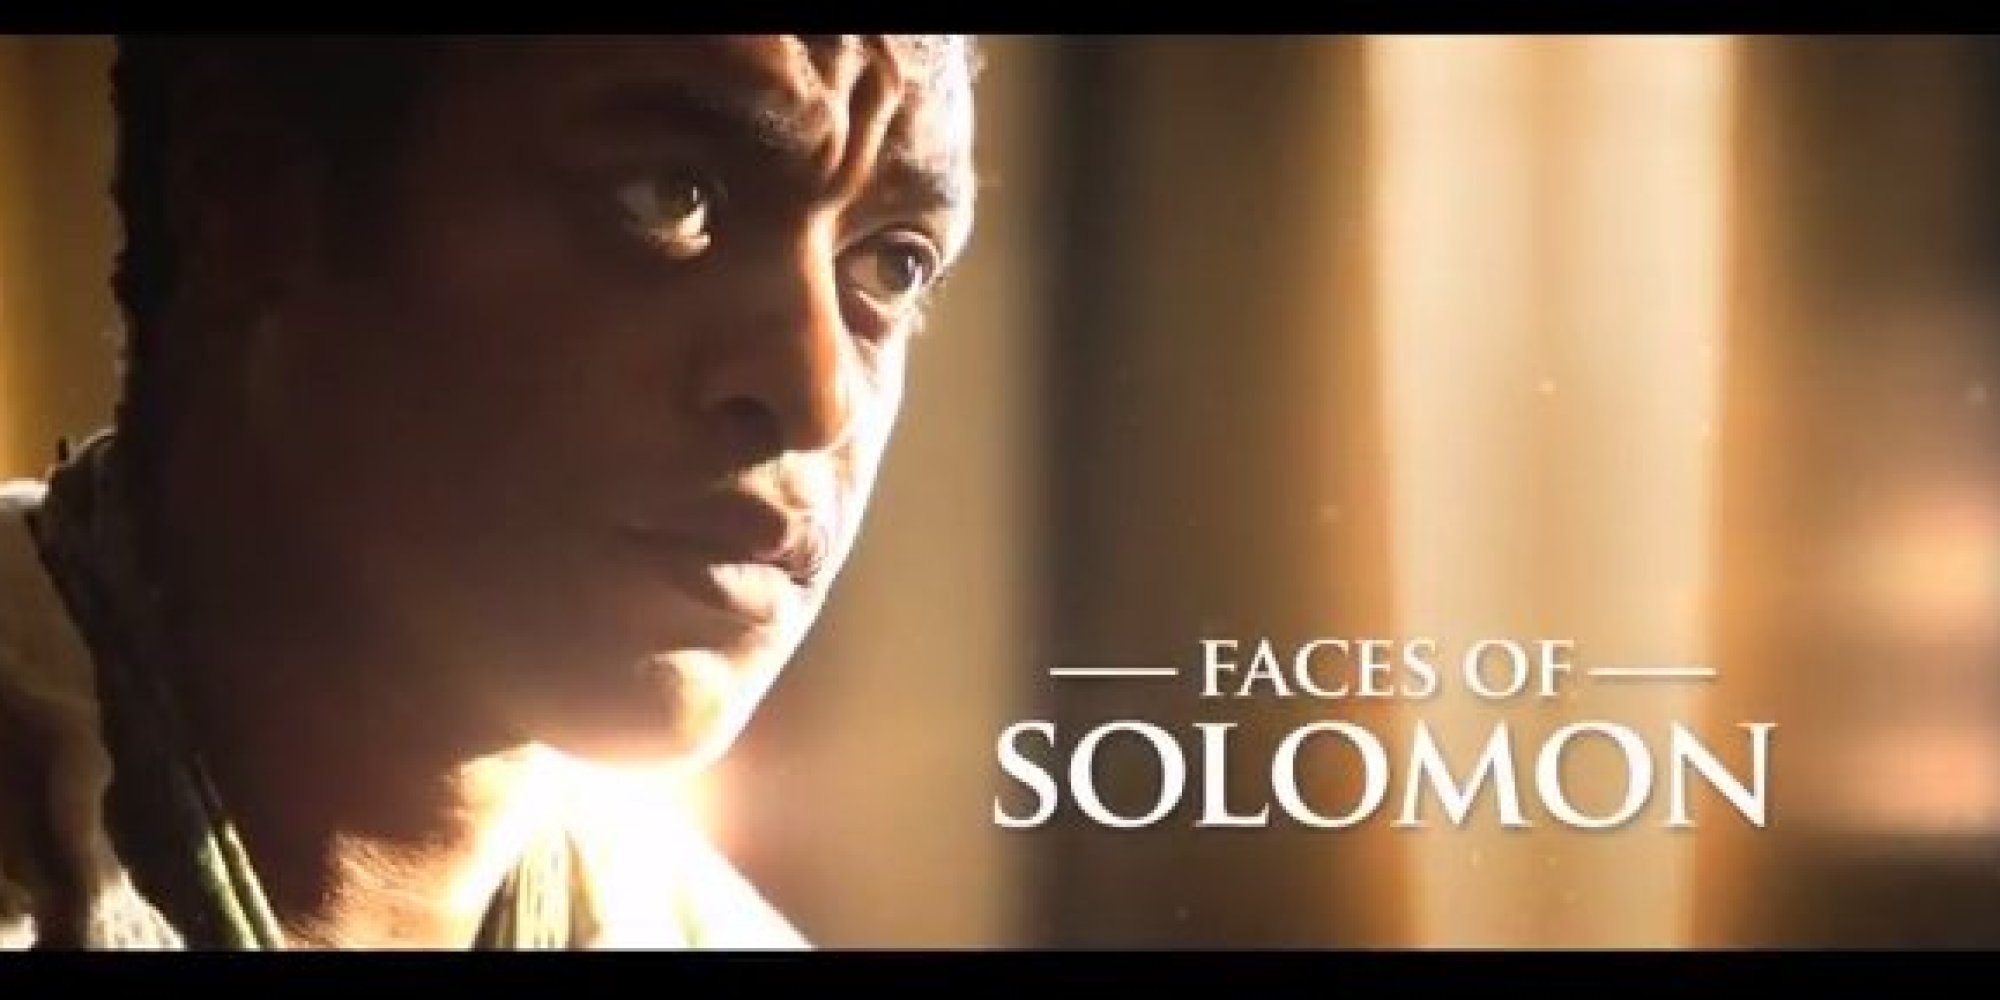 Faces of Solomon